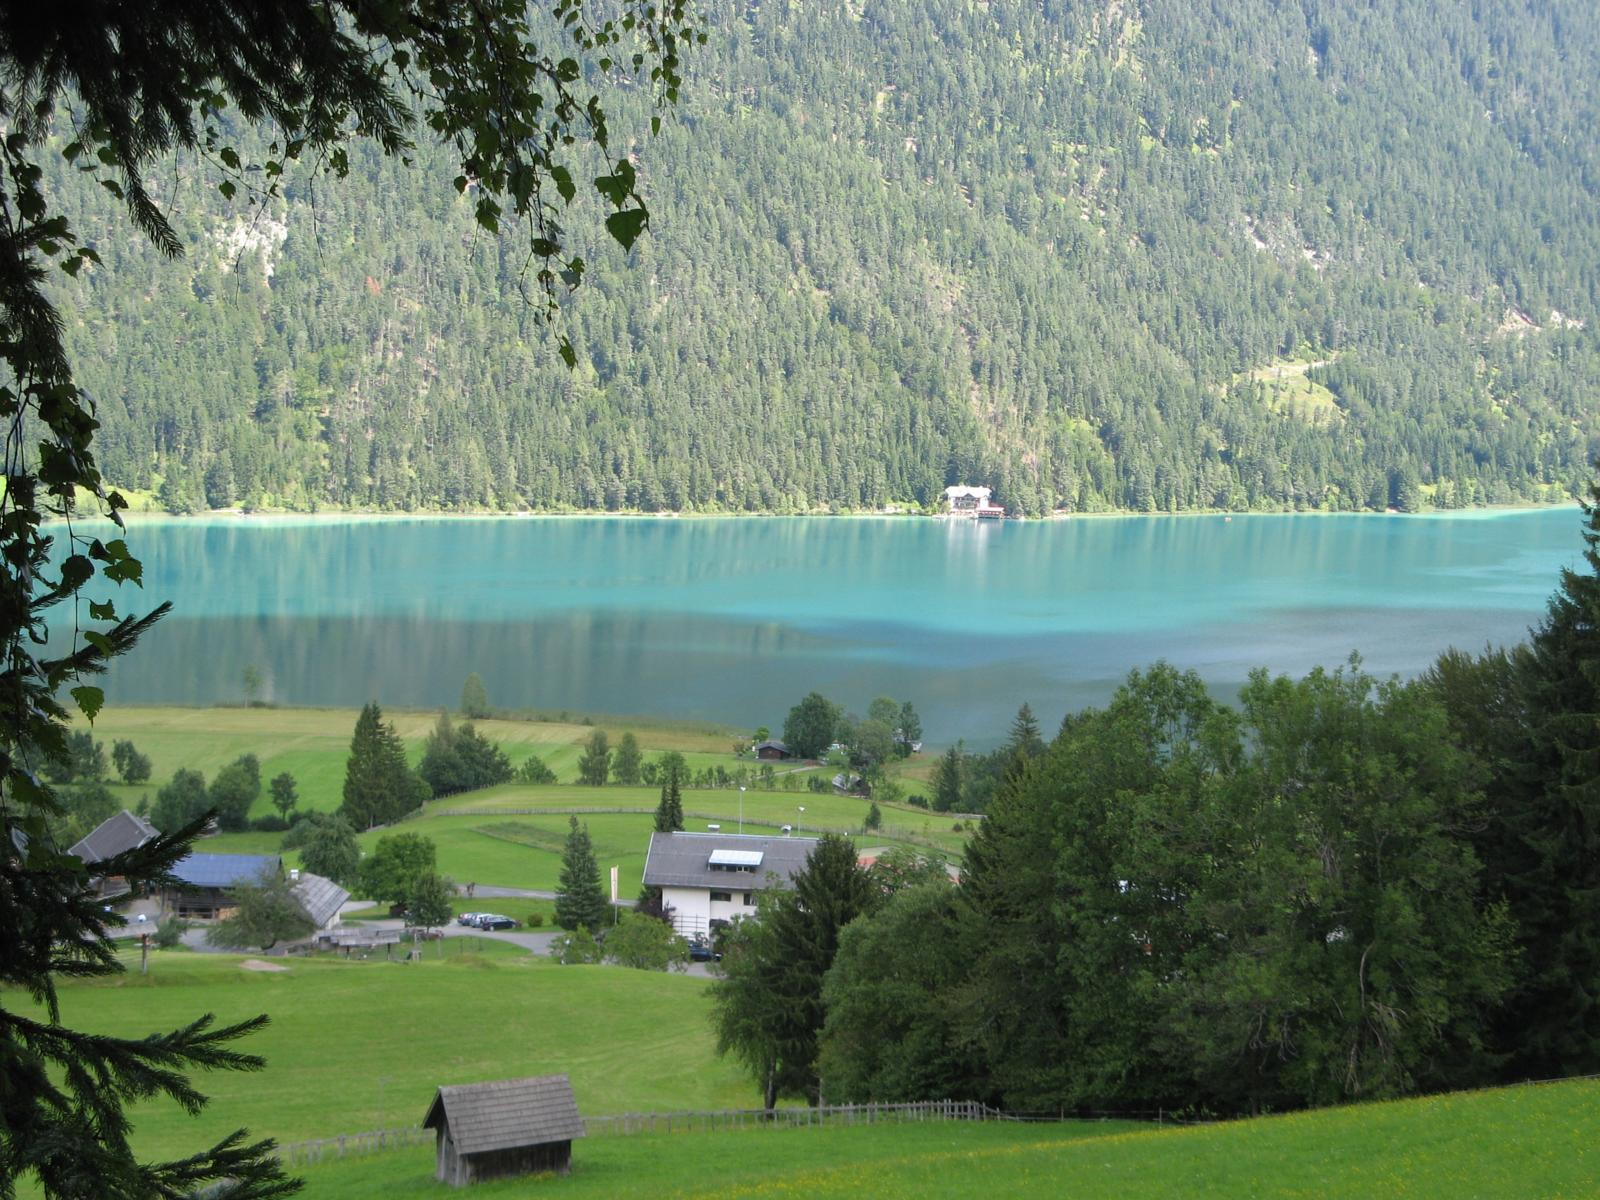 Foto de Above Weissensee (Weißensee) lake to Naggler alm